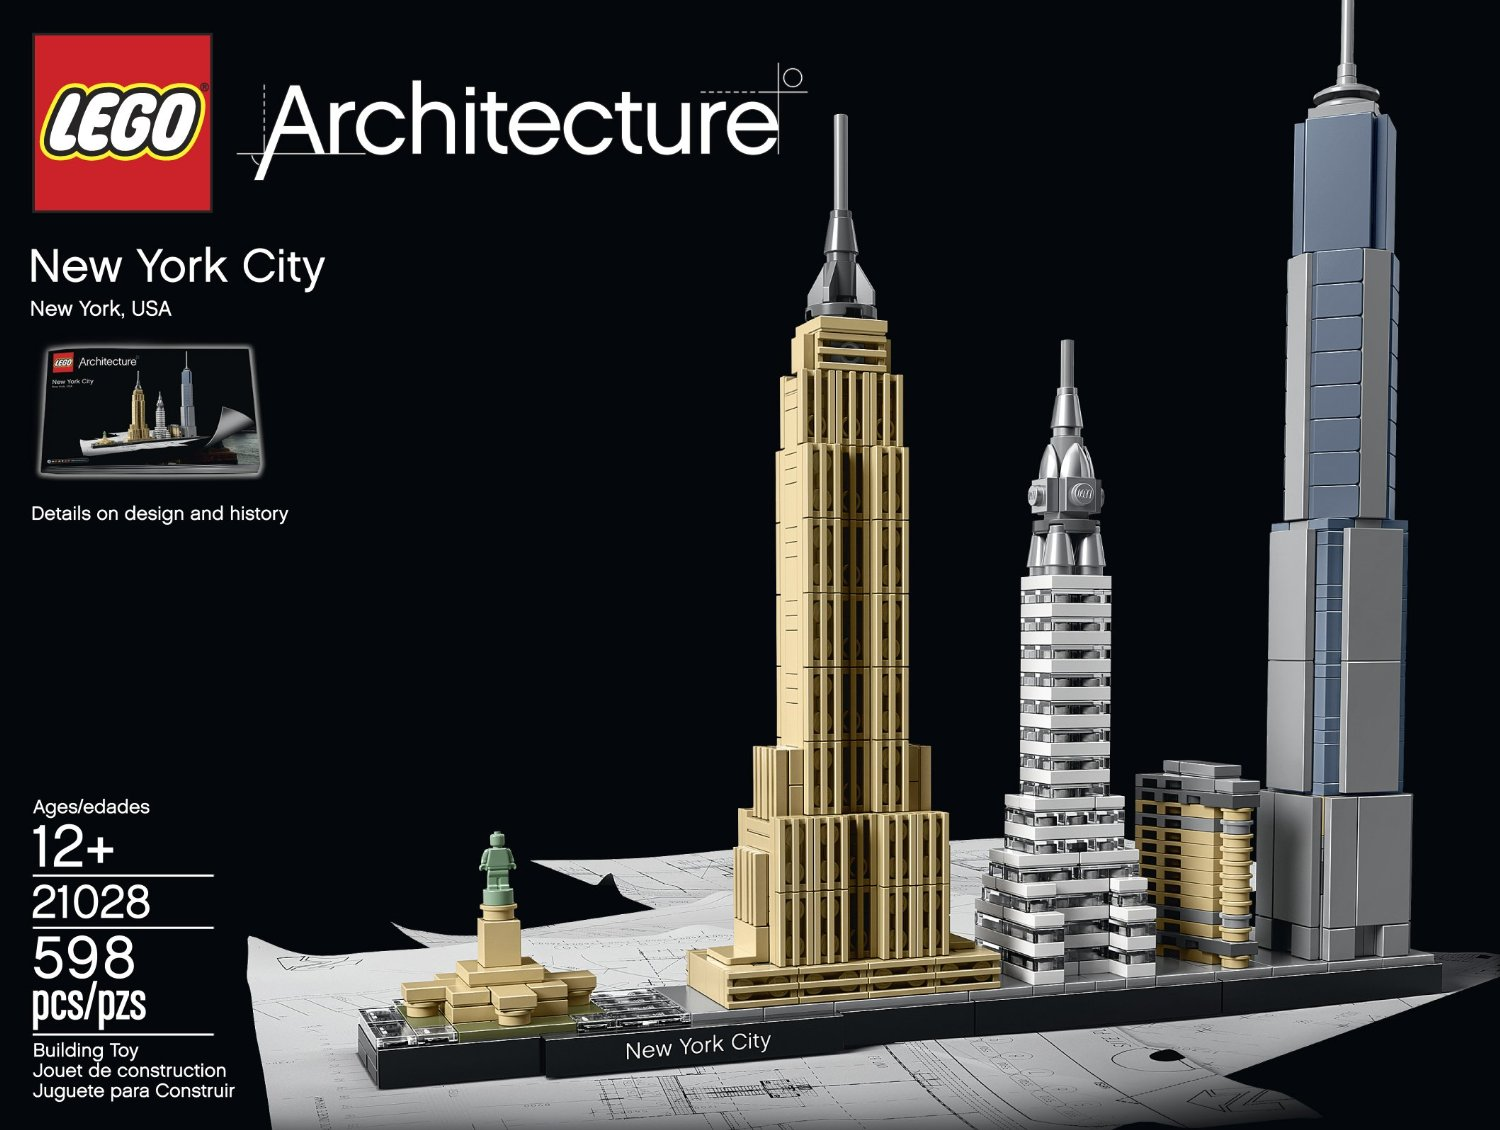 lego architecture new york city. Black Bedroom Furniture Sets. Home Design Ideas